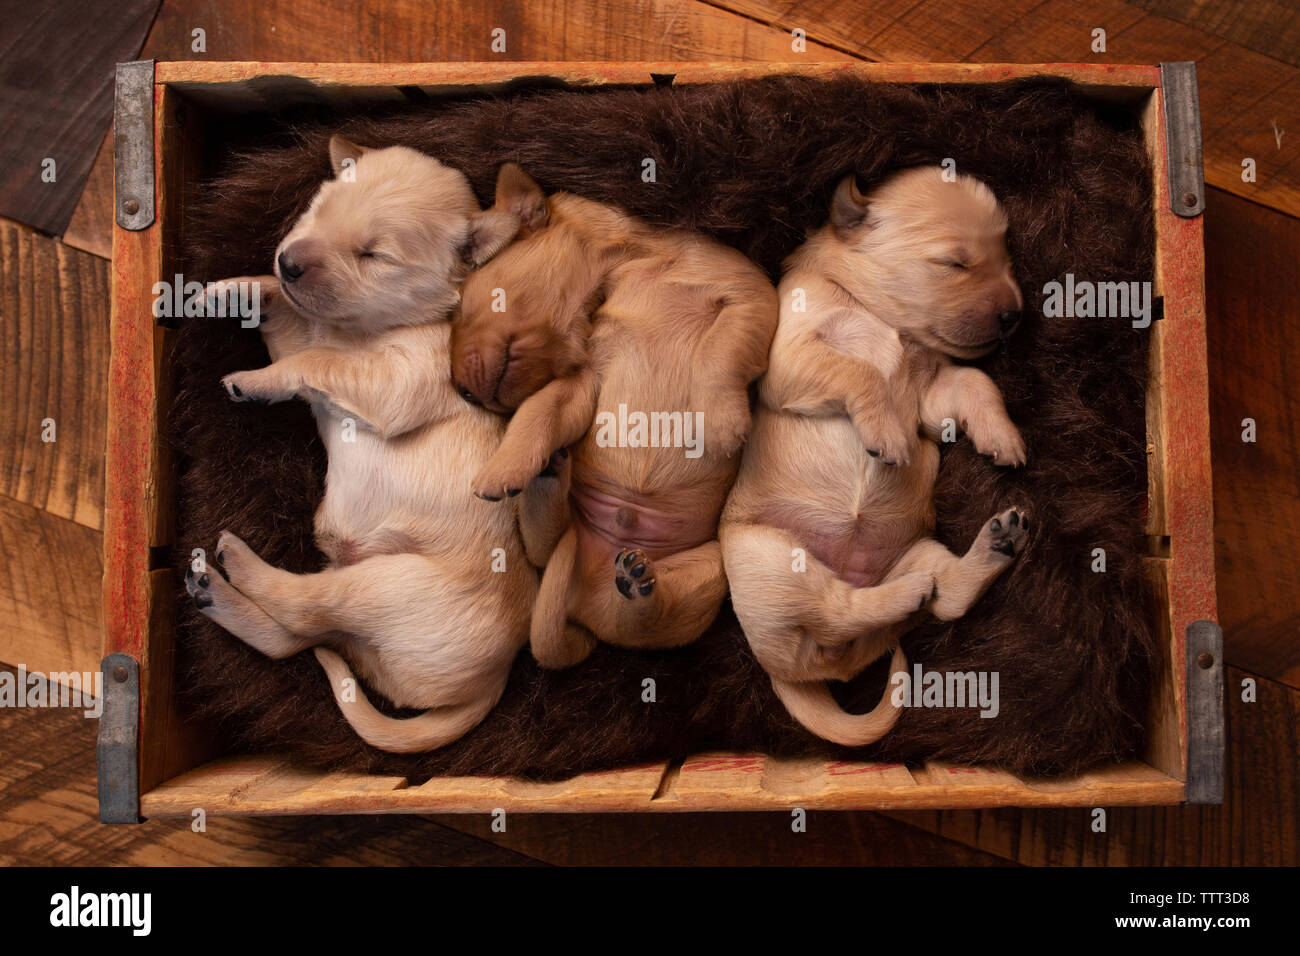 Overhead view of cute puppies sleeping in pet bed on hardwood floor at home - Stock Image